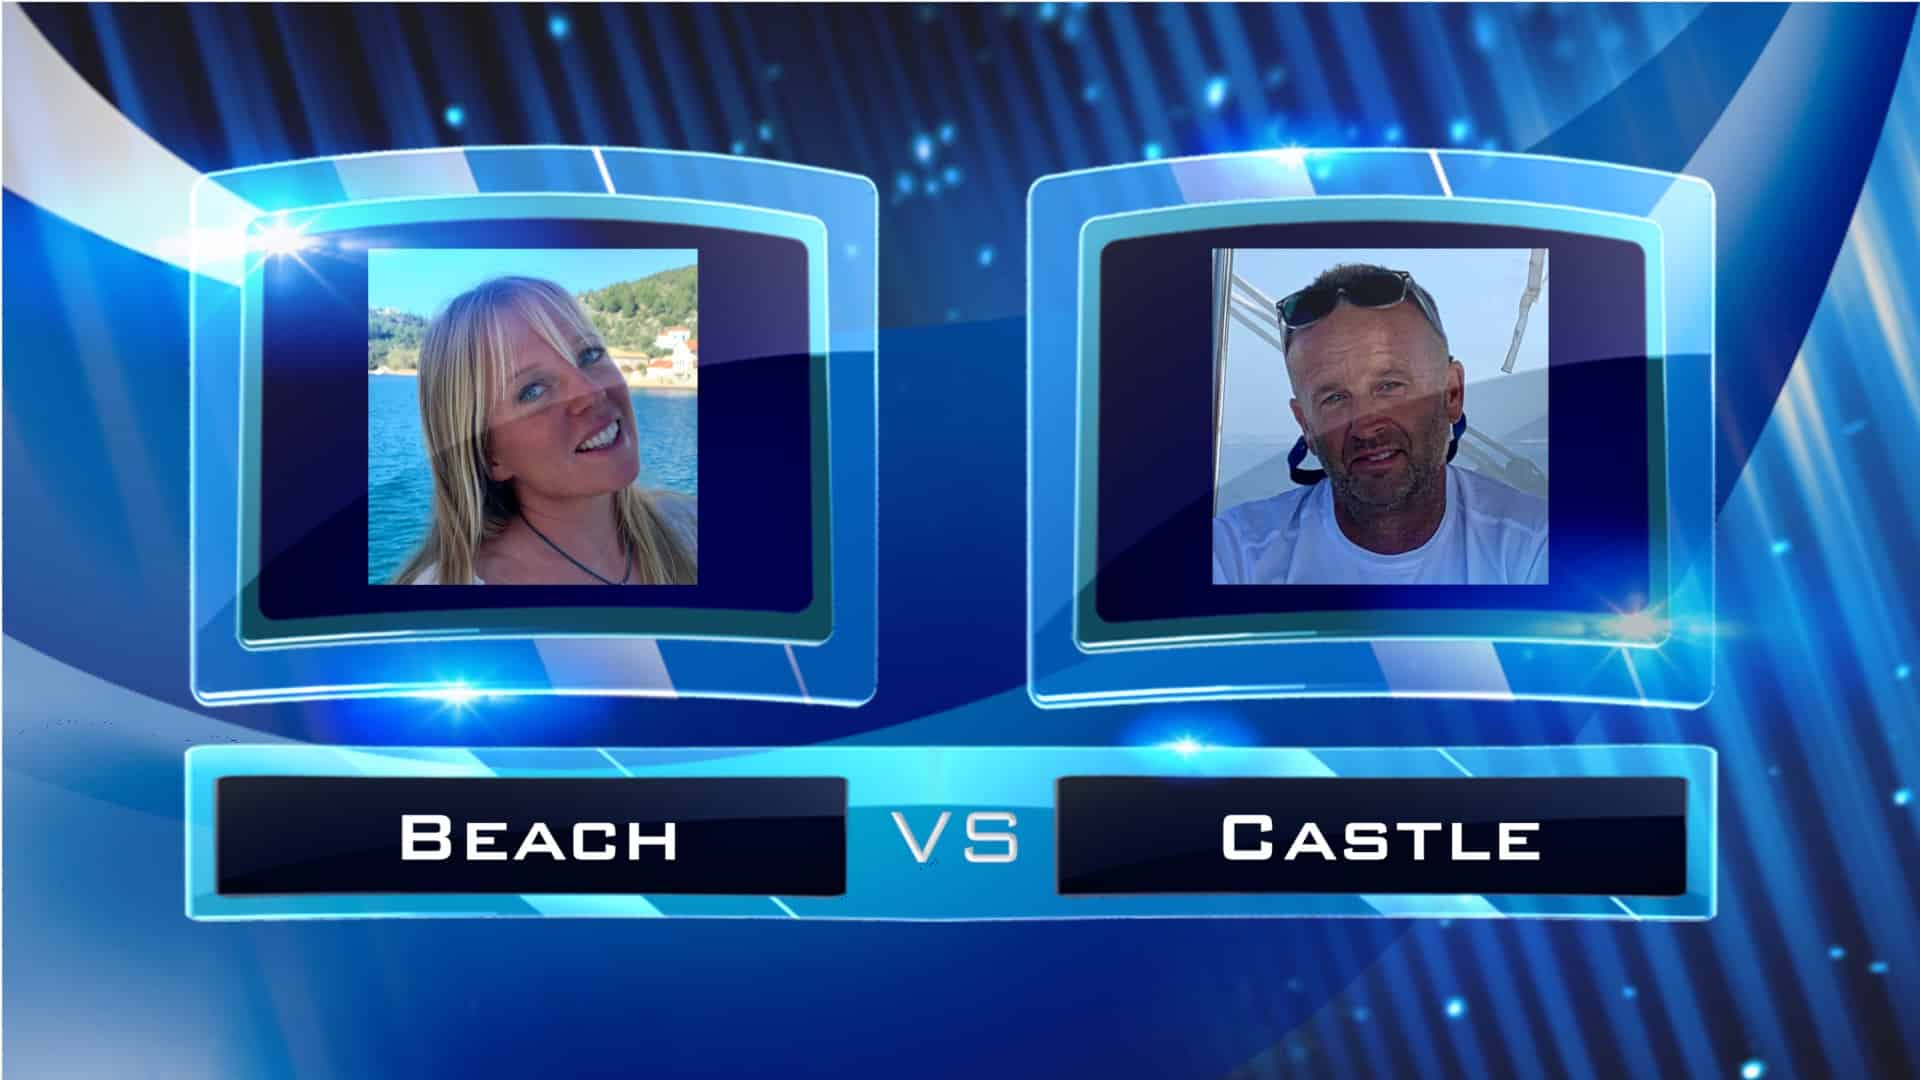 Beach vs Castle